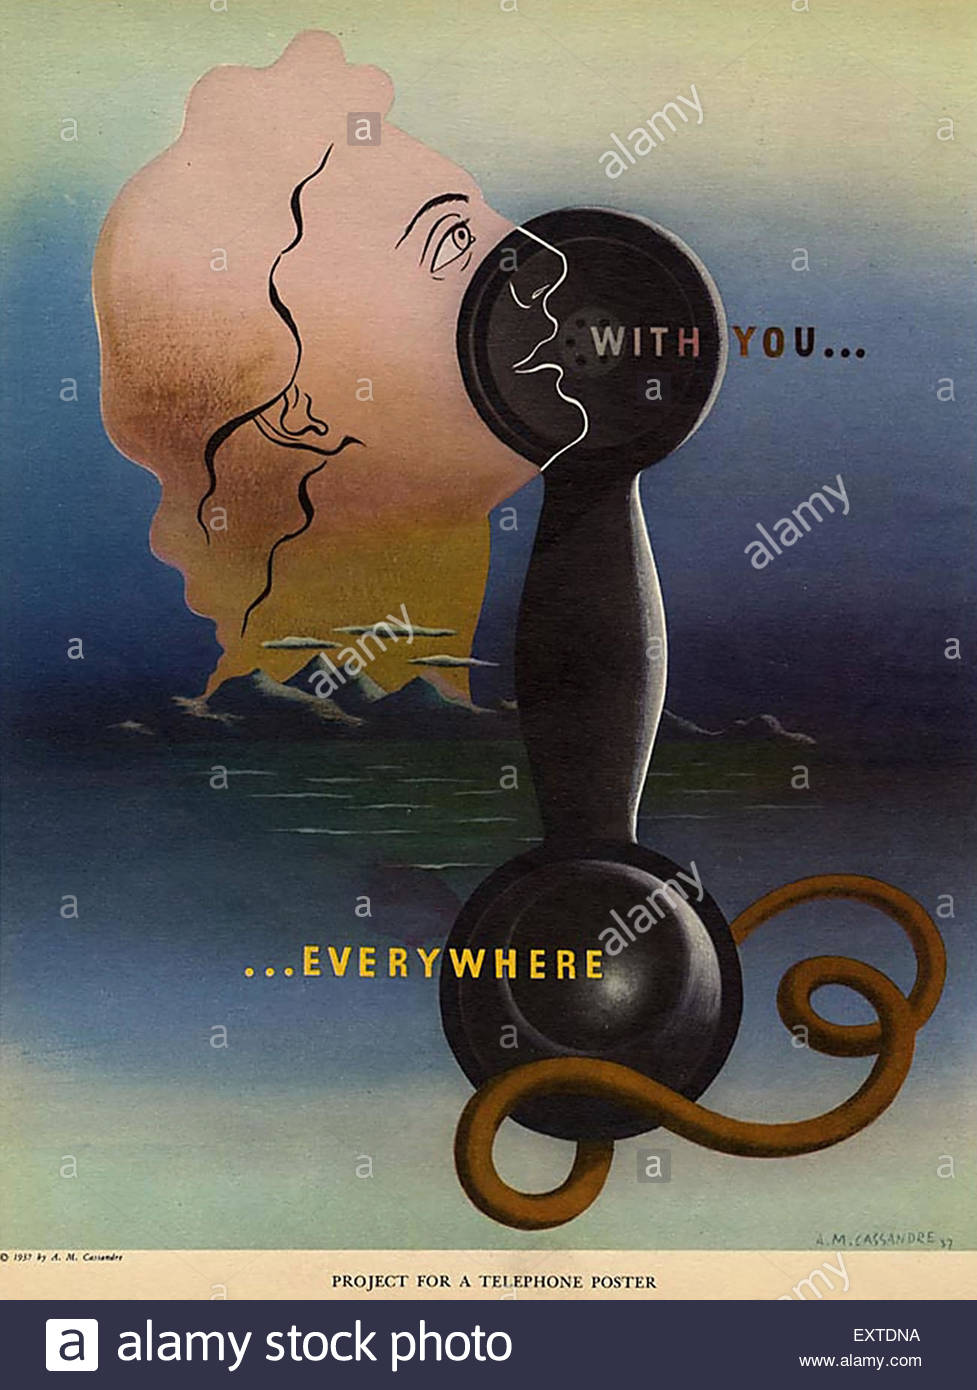 1930s USA Telephones Poster - Stock Image